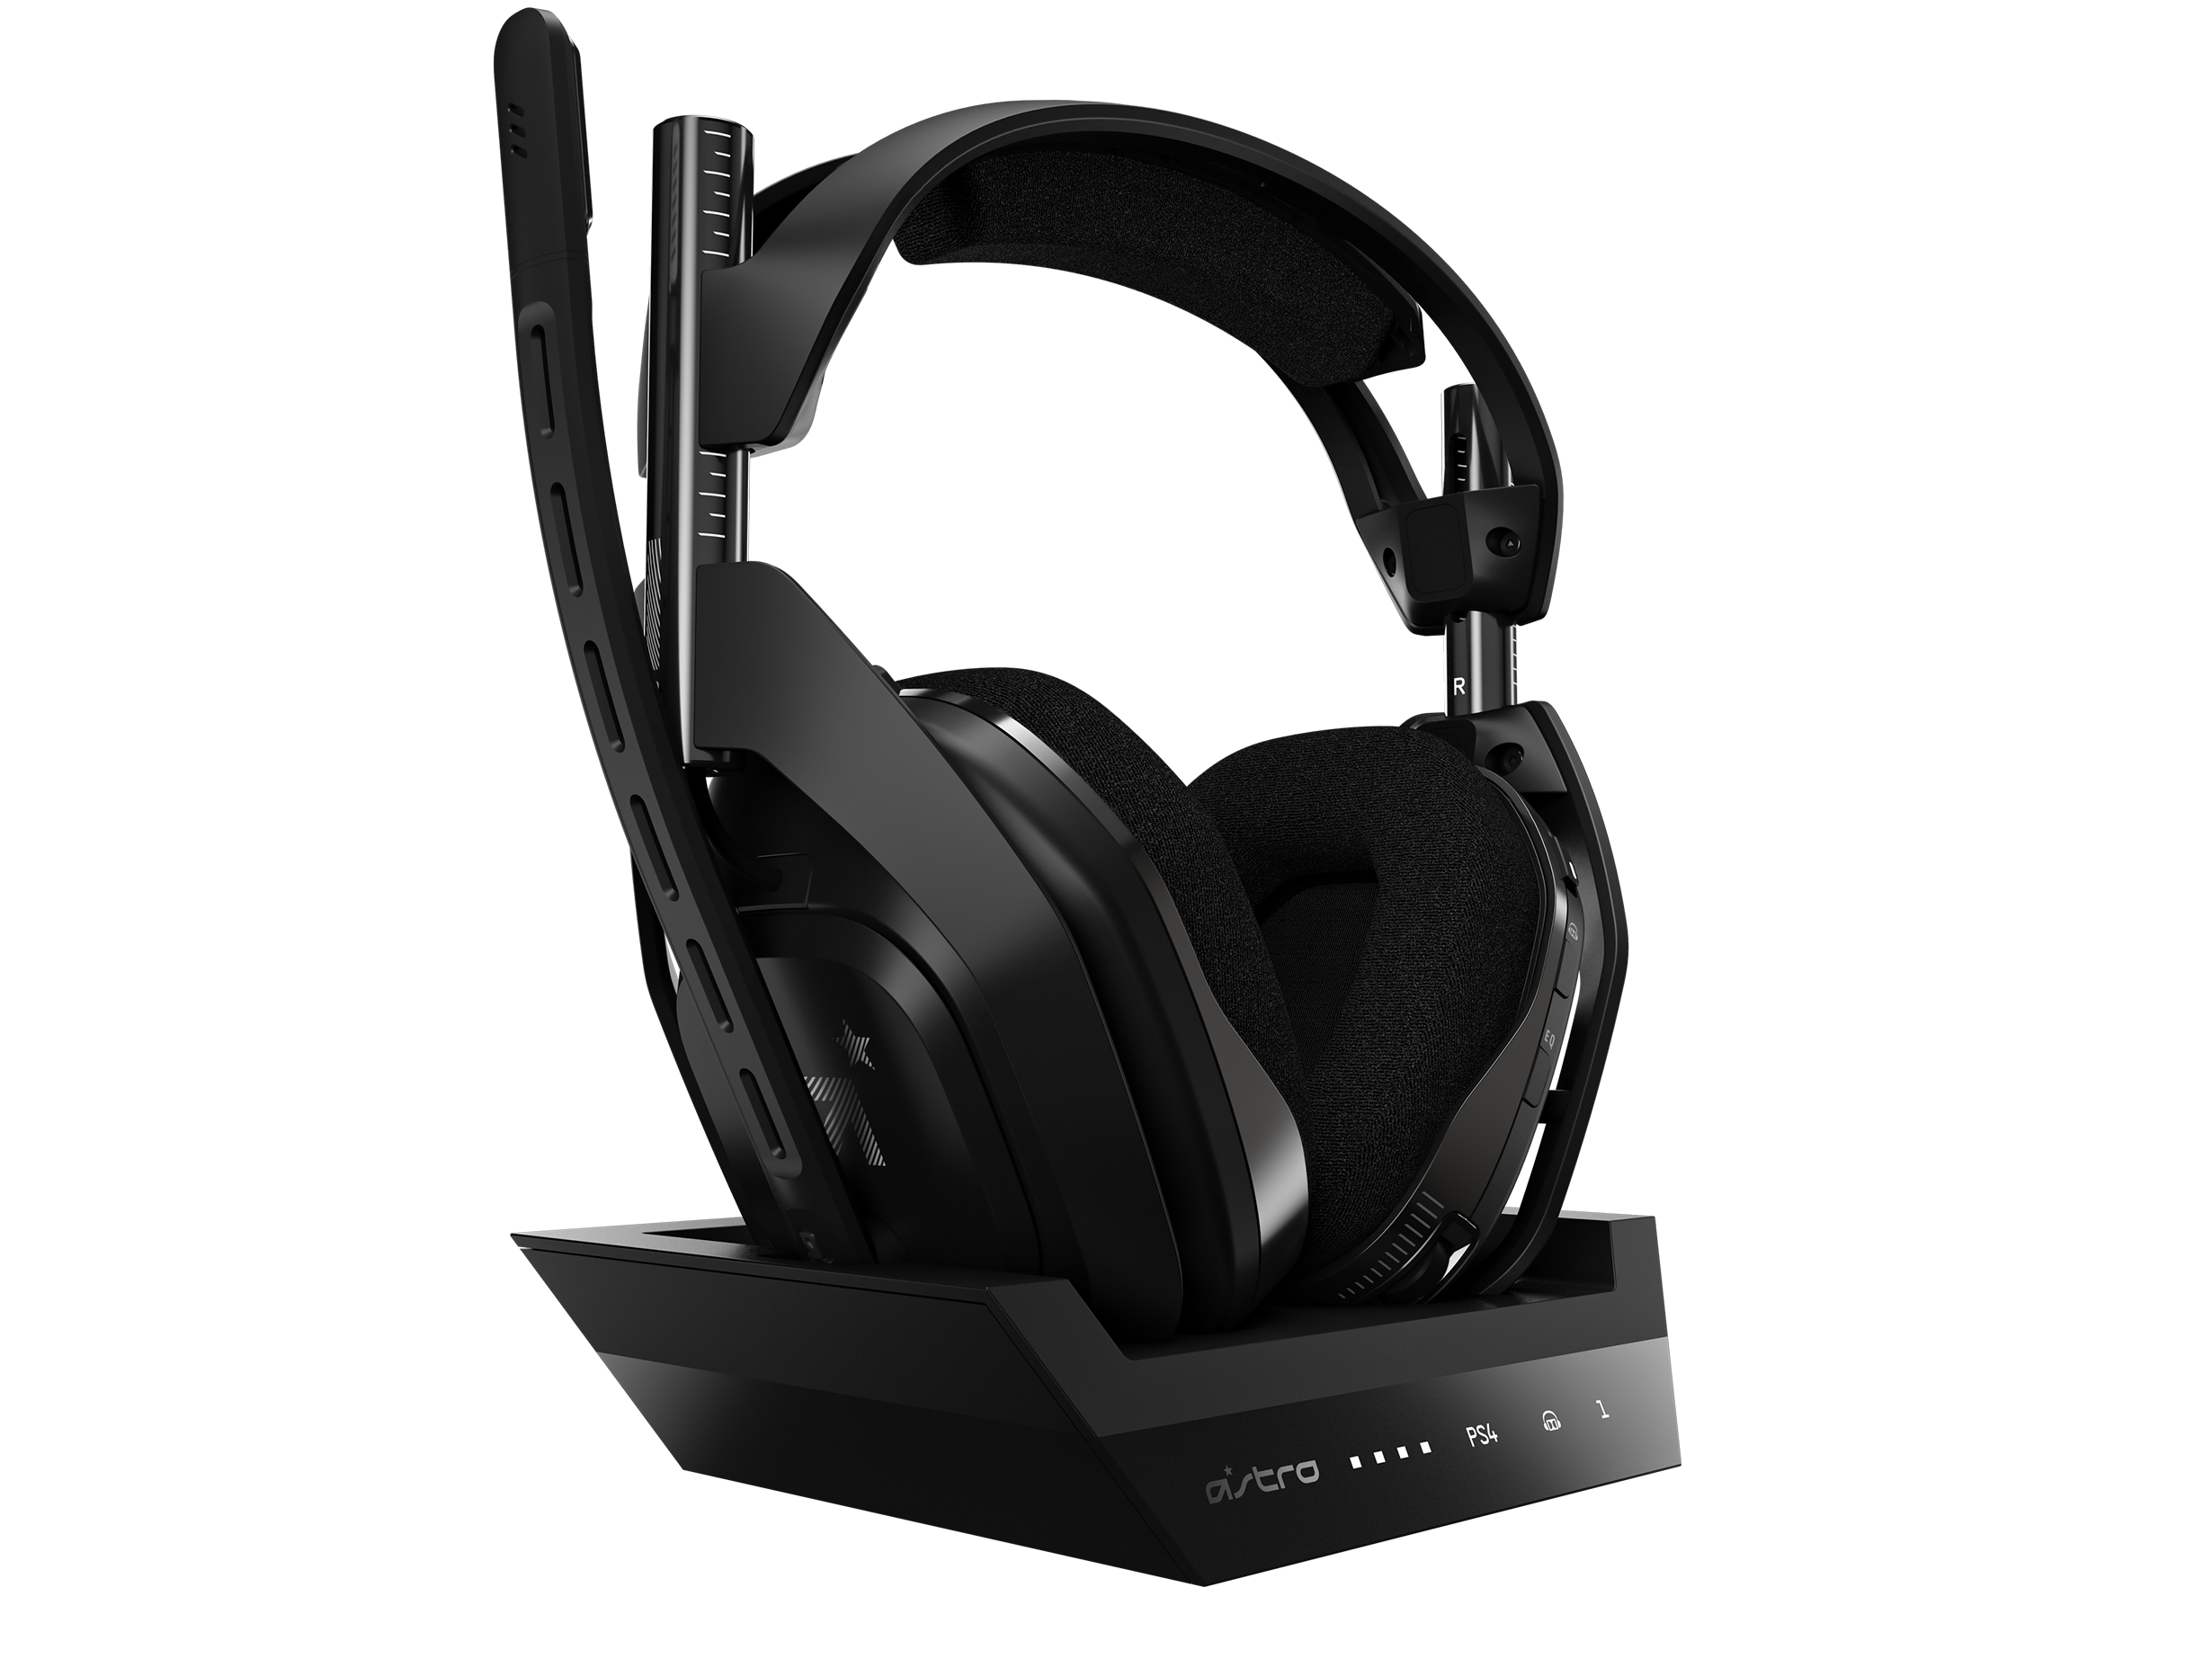 Astro A50 Ps4 Wireless Headset Base Station Astro Gaming